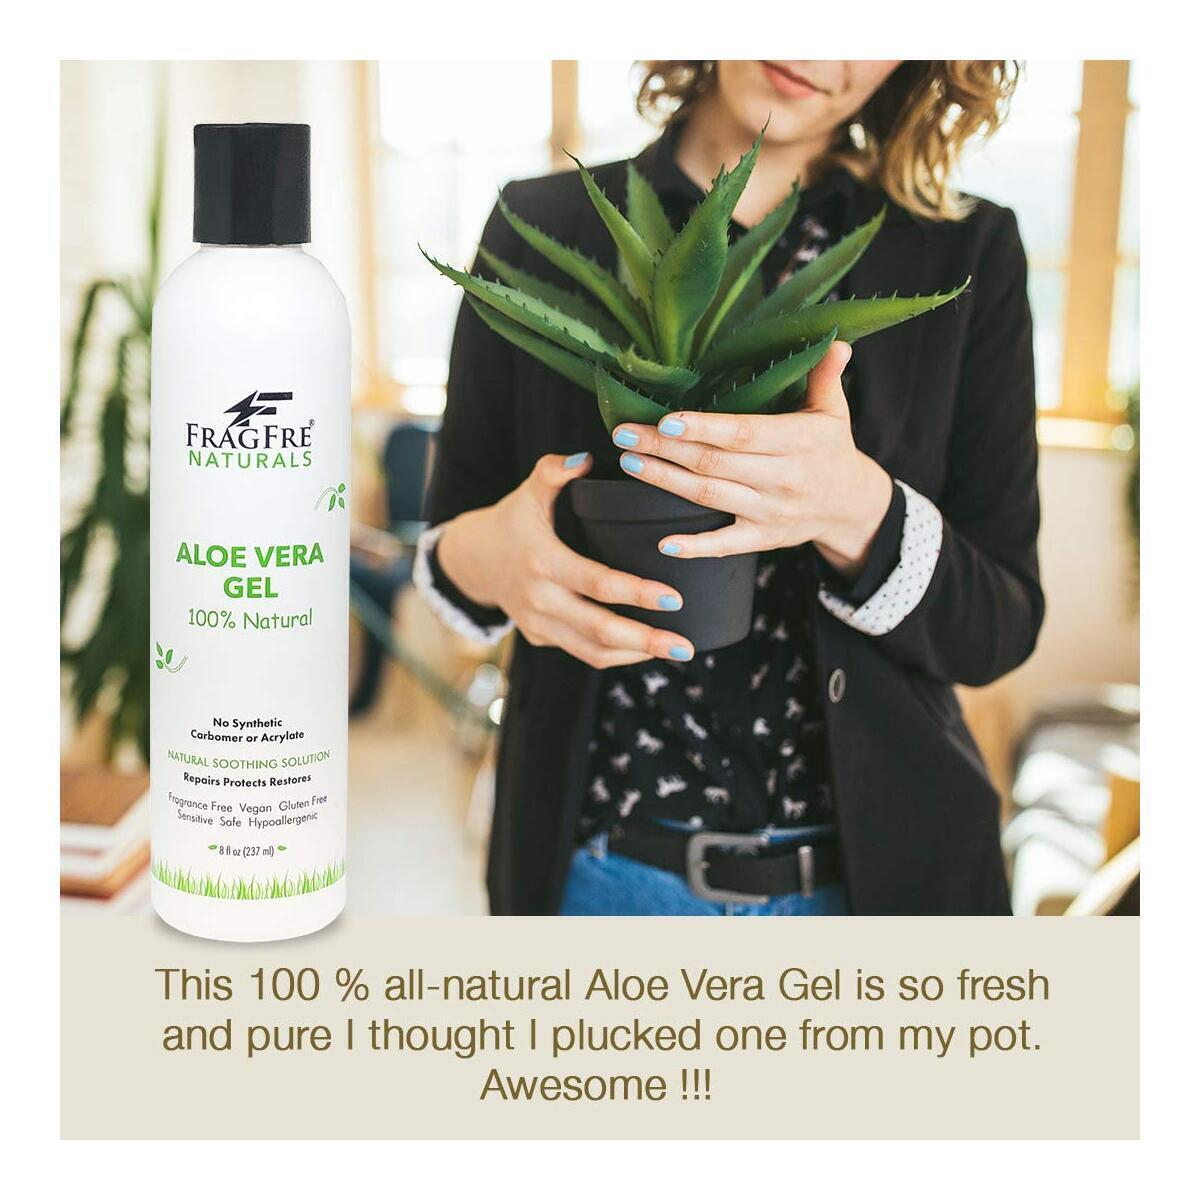 FRAGFRE All-Natural Aloe Vera Gel 8 oz - No Synthetic Carbomer or Acrylate - 100% Natural Aloe Vera Soothing Gel - After Sun Exposure Skin Care - Fragrance Free Vegan Gluten Free